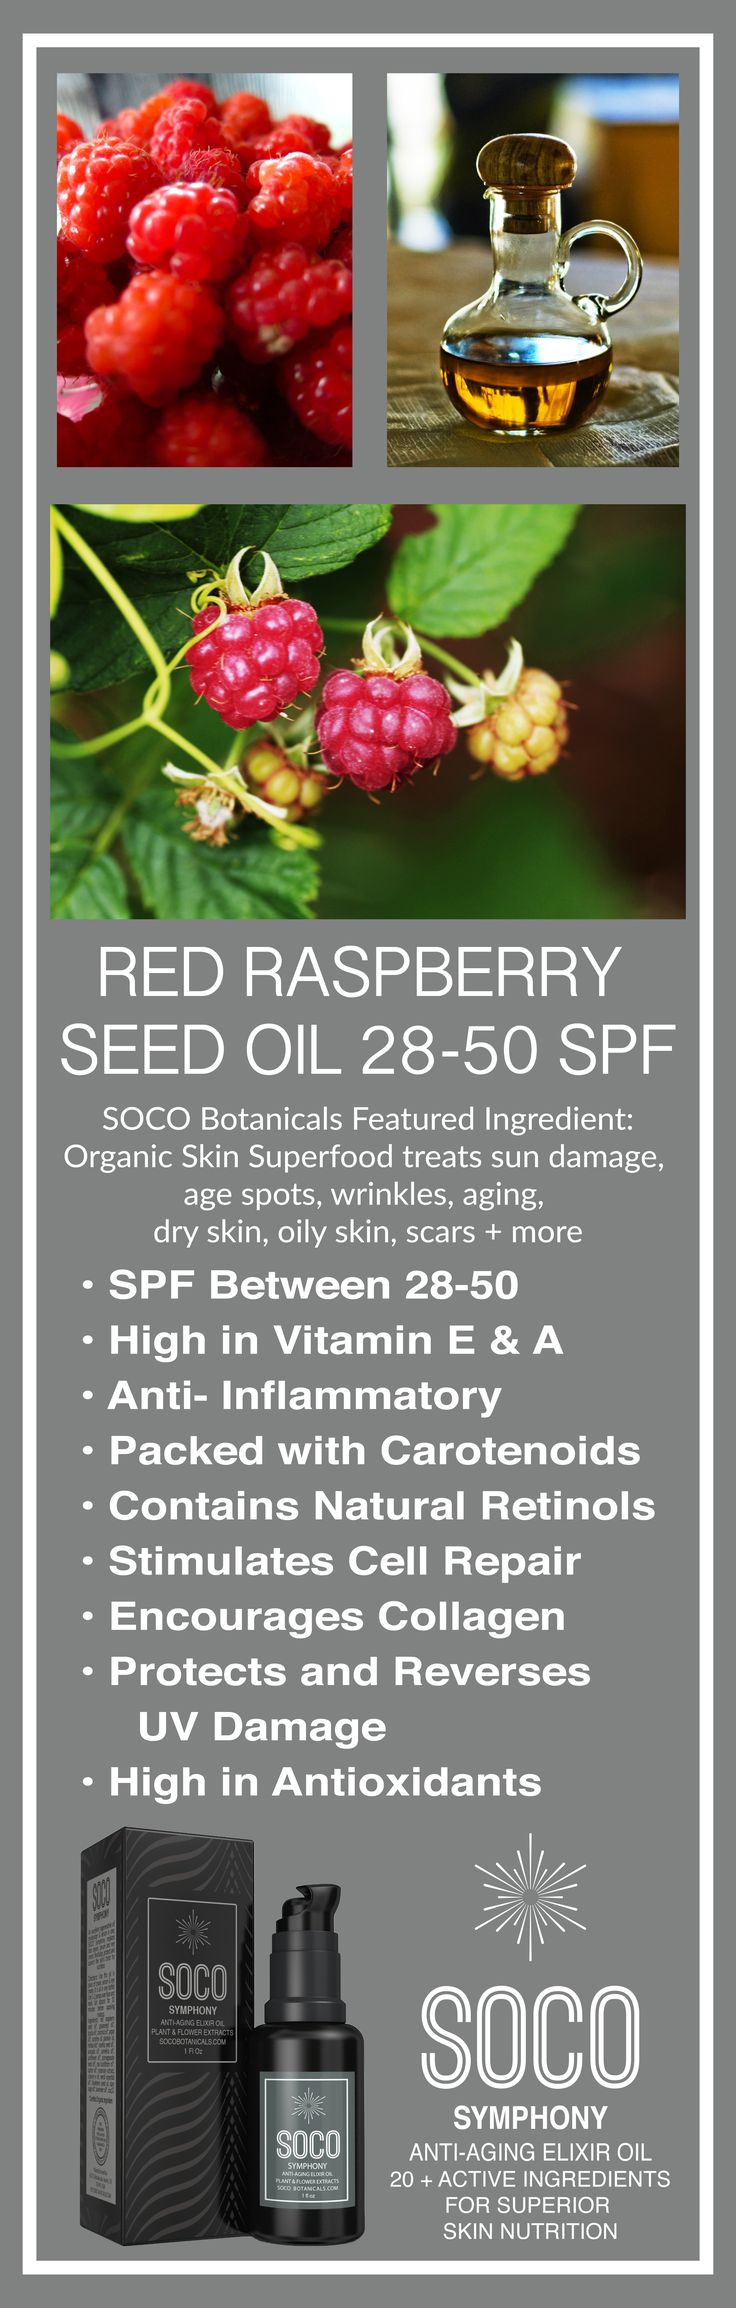 Red Raspberry Seed Oil benefits for face: - Up to 50 SPF - Anti Inflammatory - Regenerates Cells - Encourages collagen - Protects against UV damage from the Sun - High in Antioxidants.